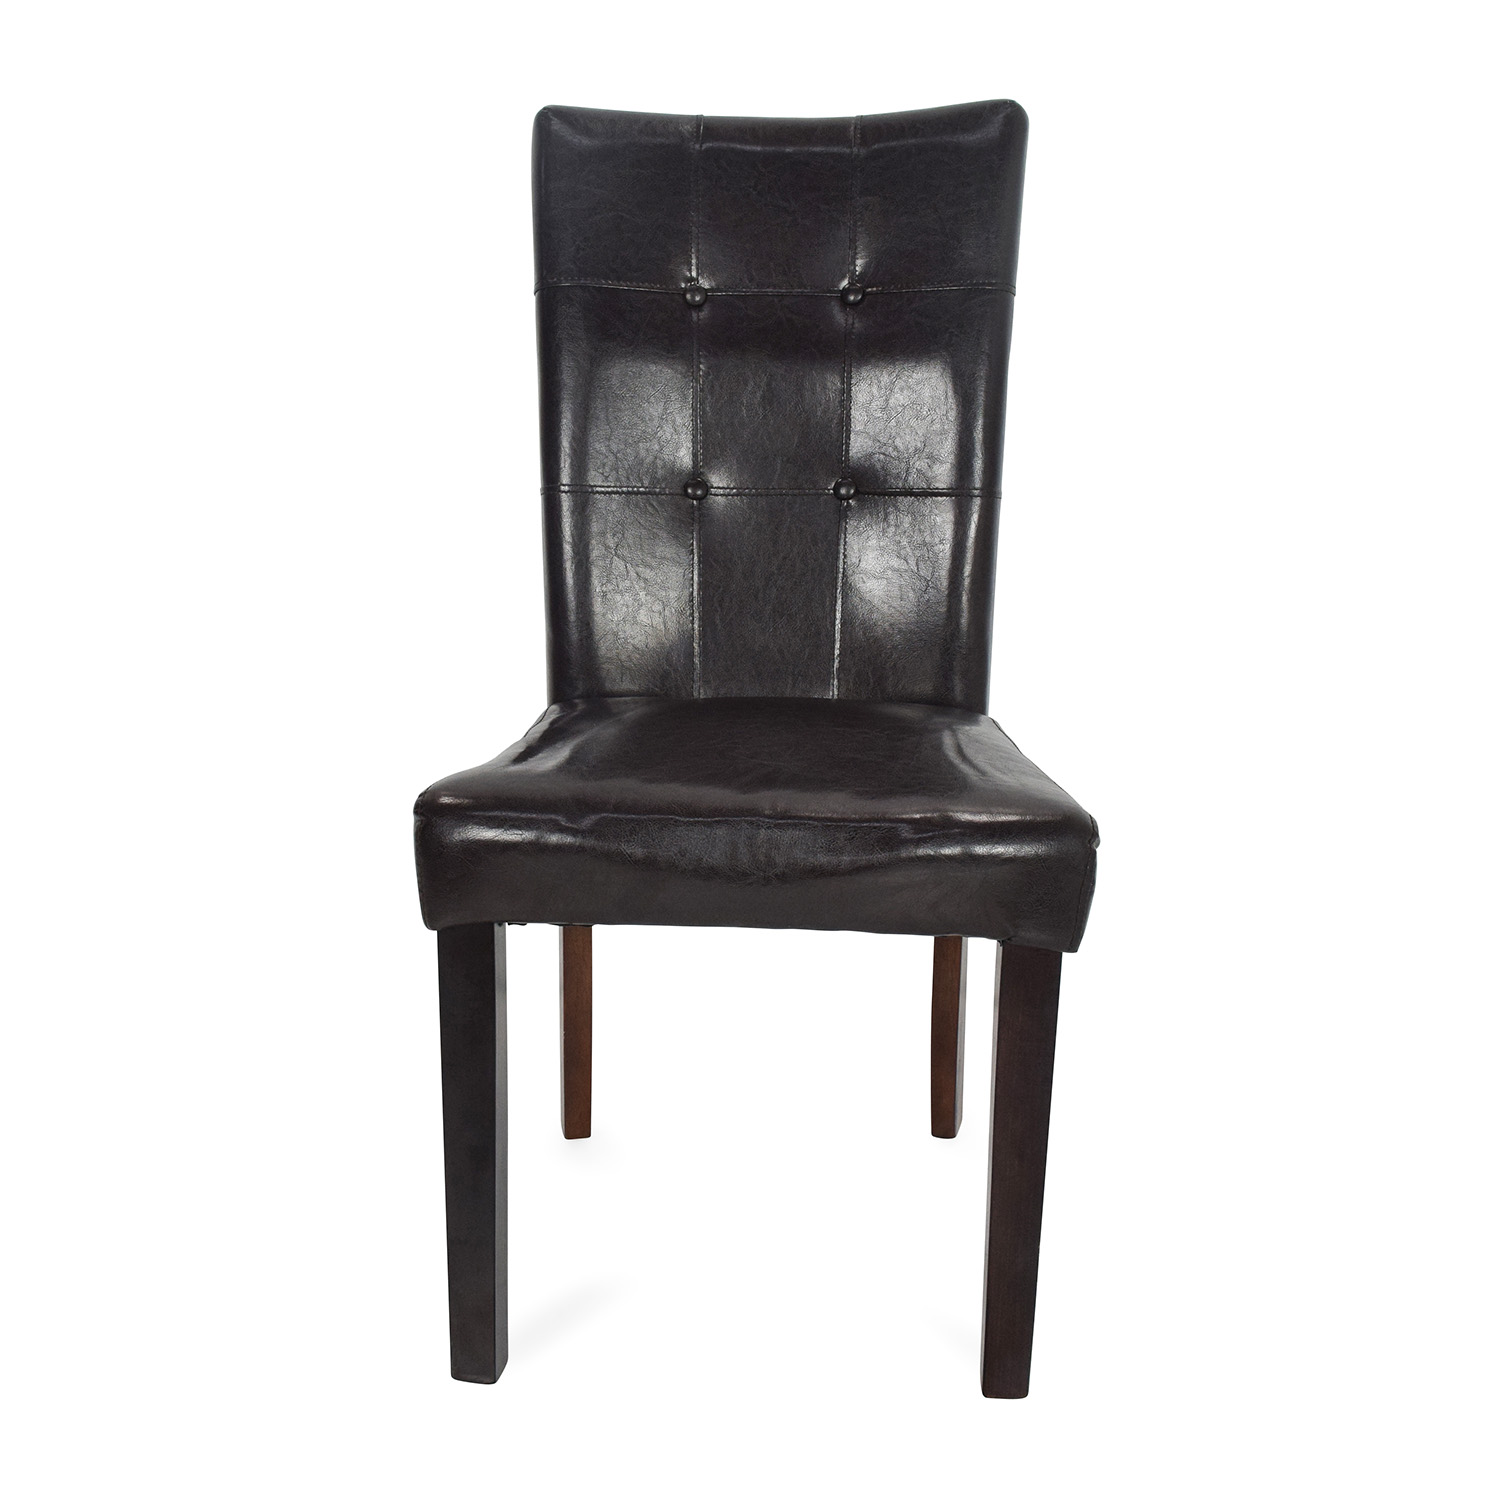 buy Kirkland's Leather Accent Chair Kirkland's Accent Chairs